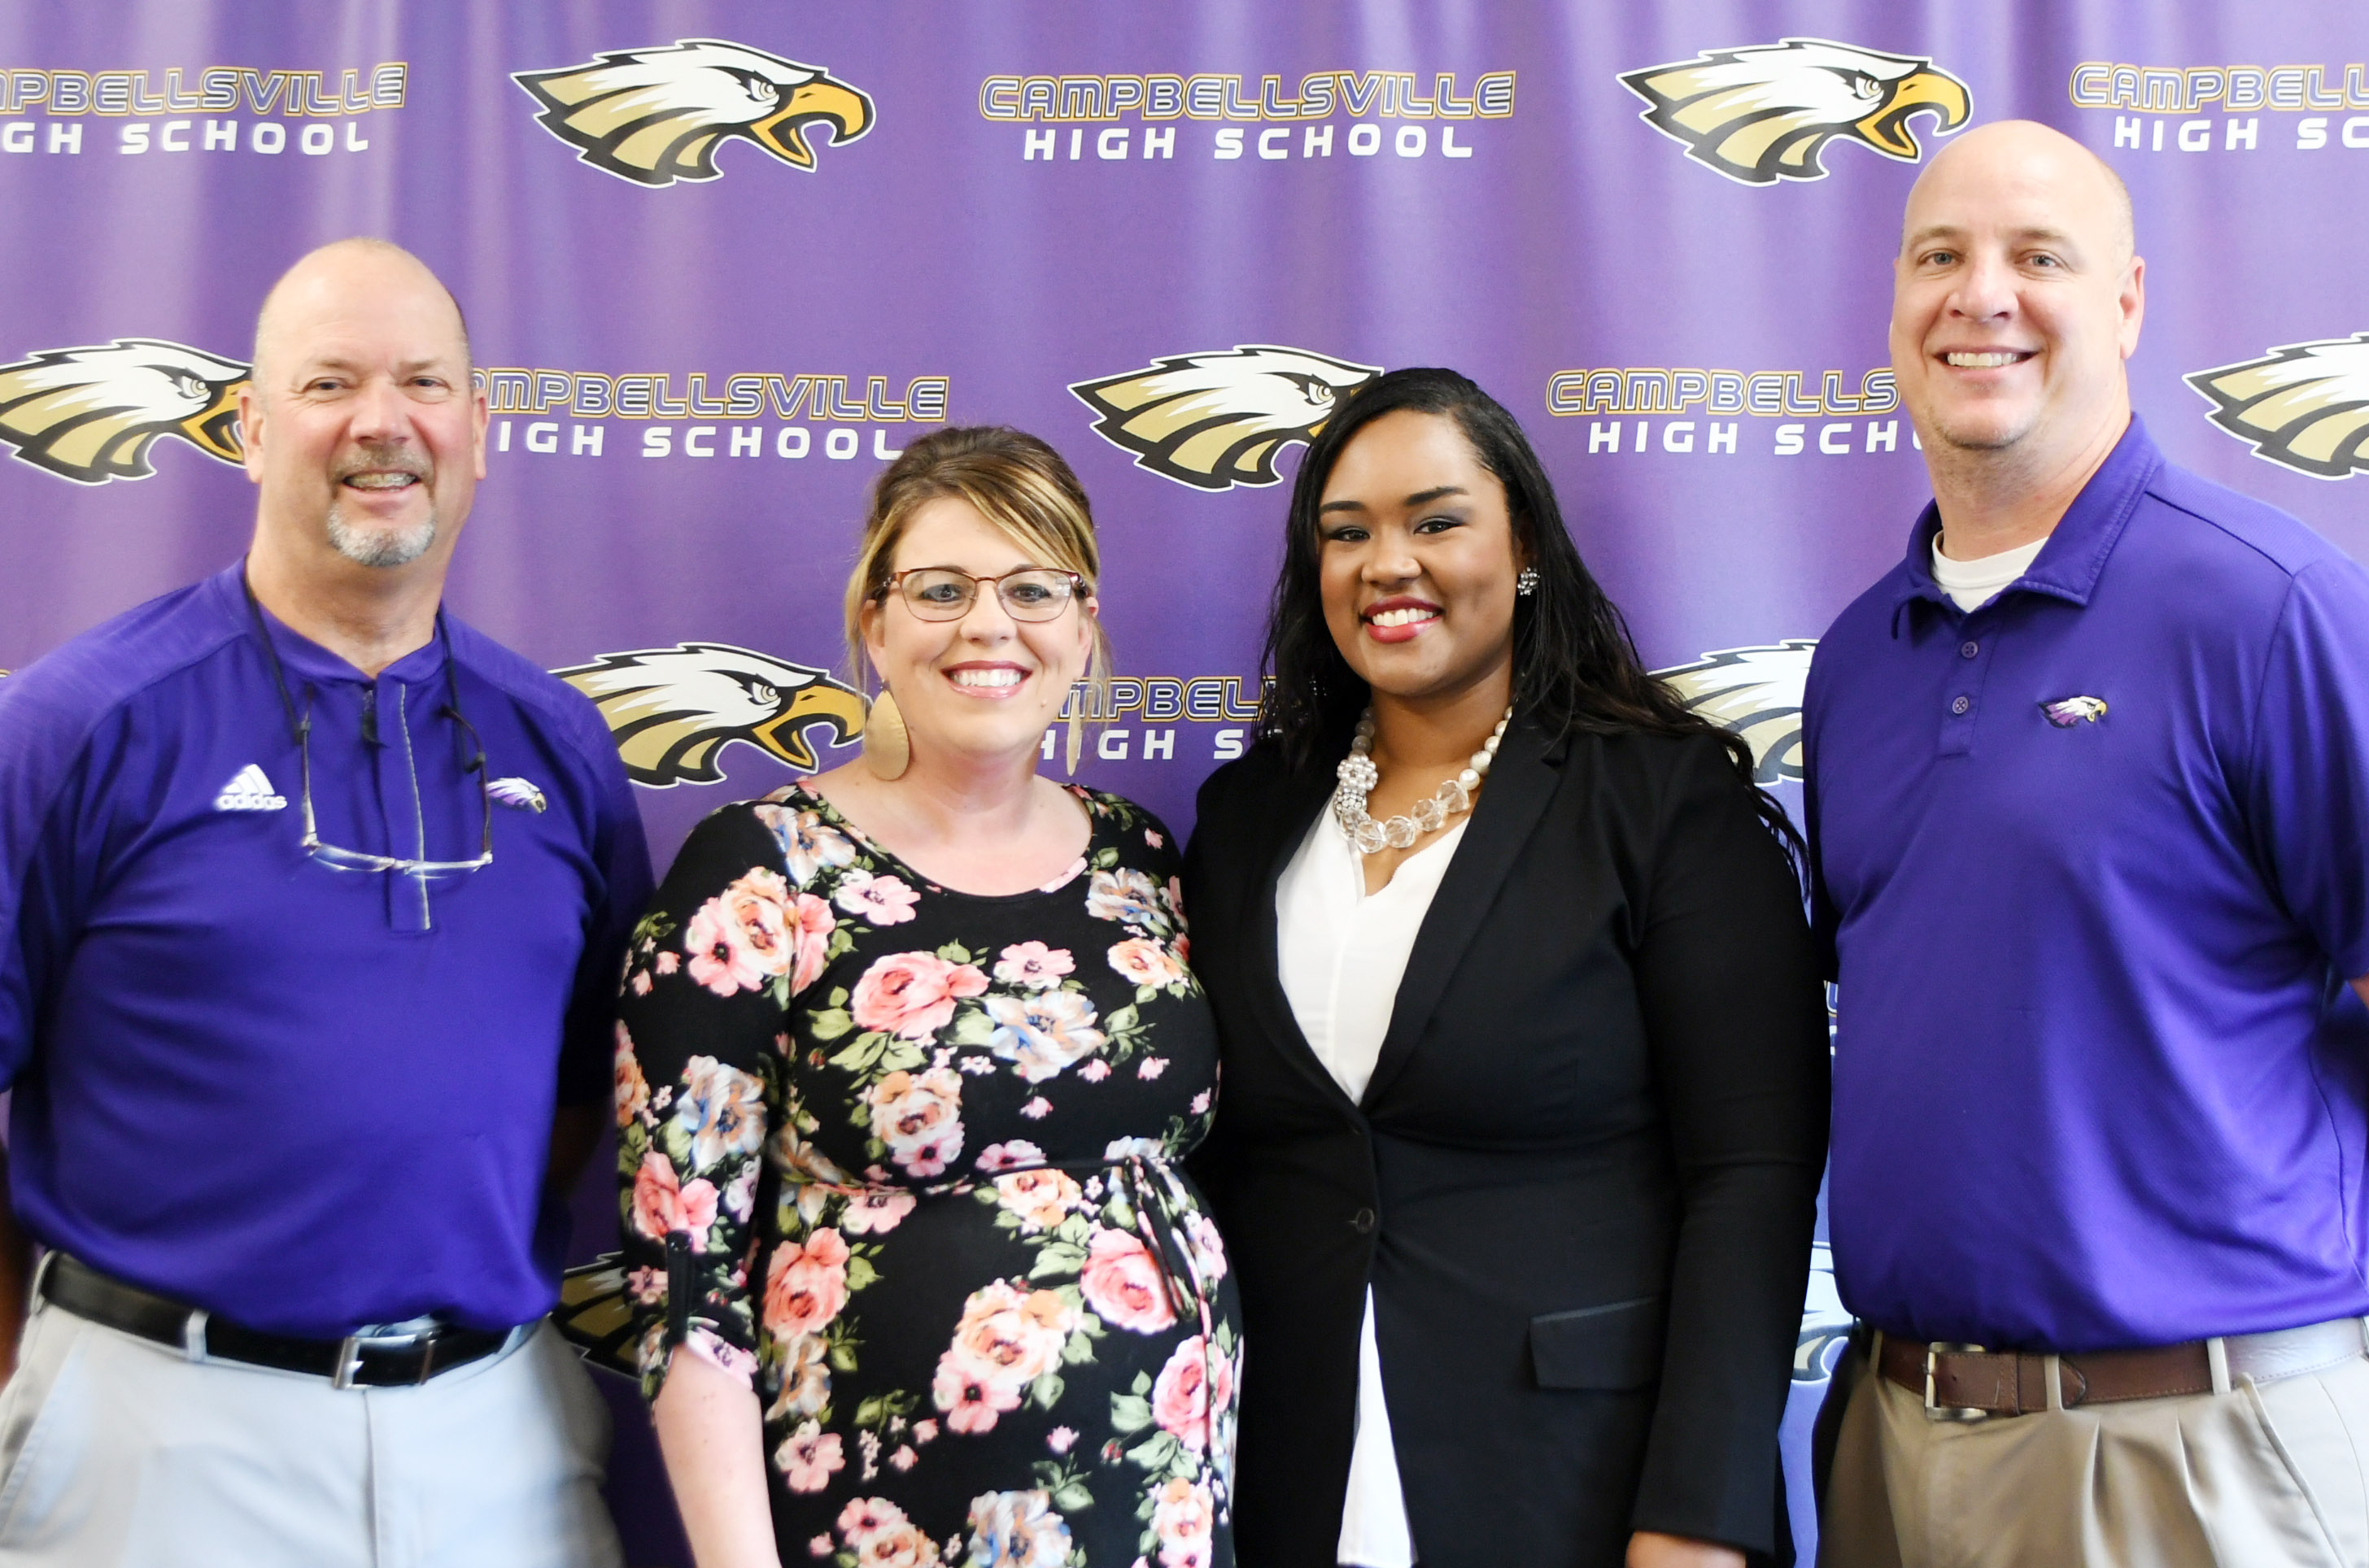 Campbellsville High School has hired a familiar face as its new head volleyball coach. Shajuana Ditto will begin her first season as head coach in August. She replaces Elisha Rhodes, who was head coach for the past two seasons. The announcement was made in a special ceremony on Thursday, May 17. From left are CHS Athletic Director Tim Davis, Rhodes, Ditto and CHS Principal David Petett.